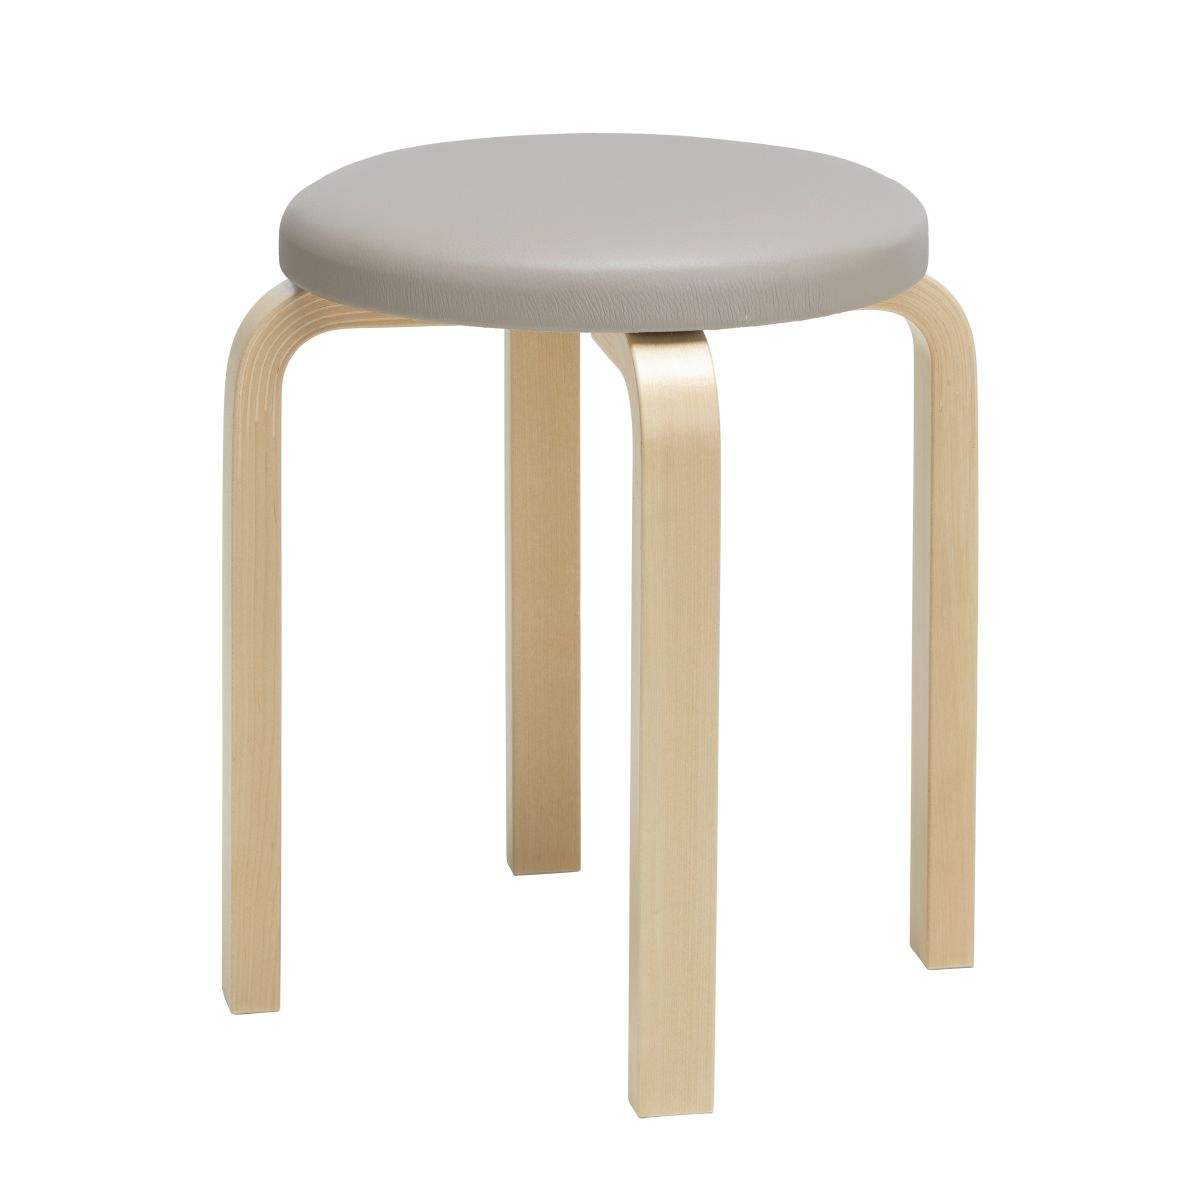 Stool E60 legs birch, top leather upholstery_F